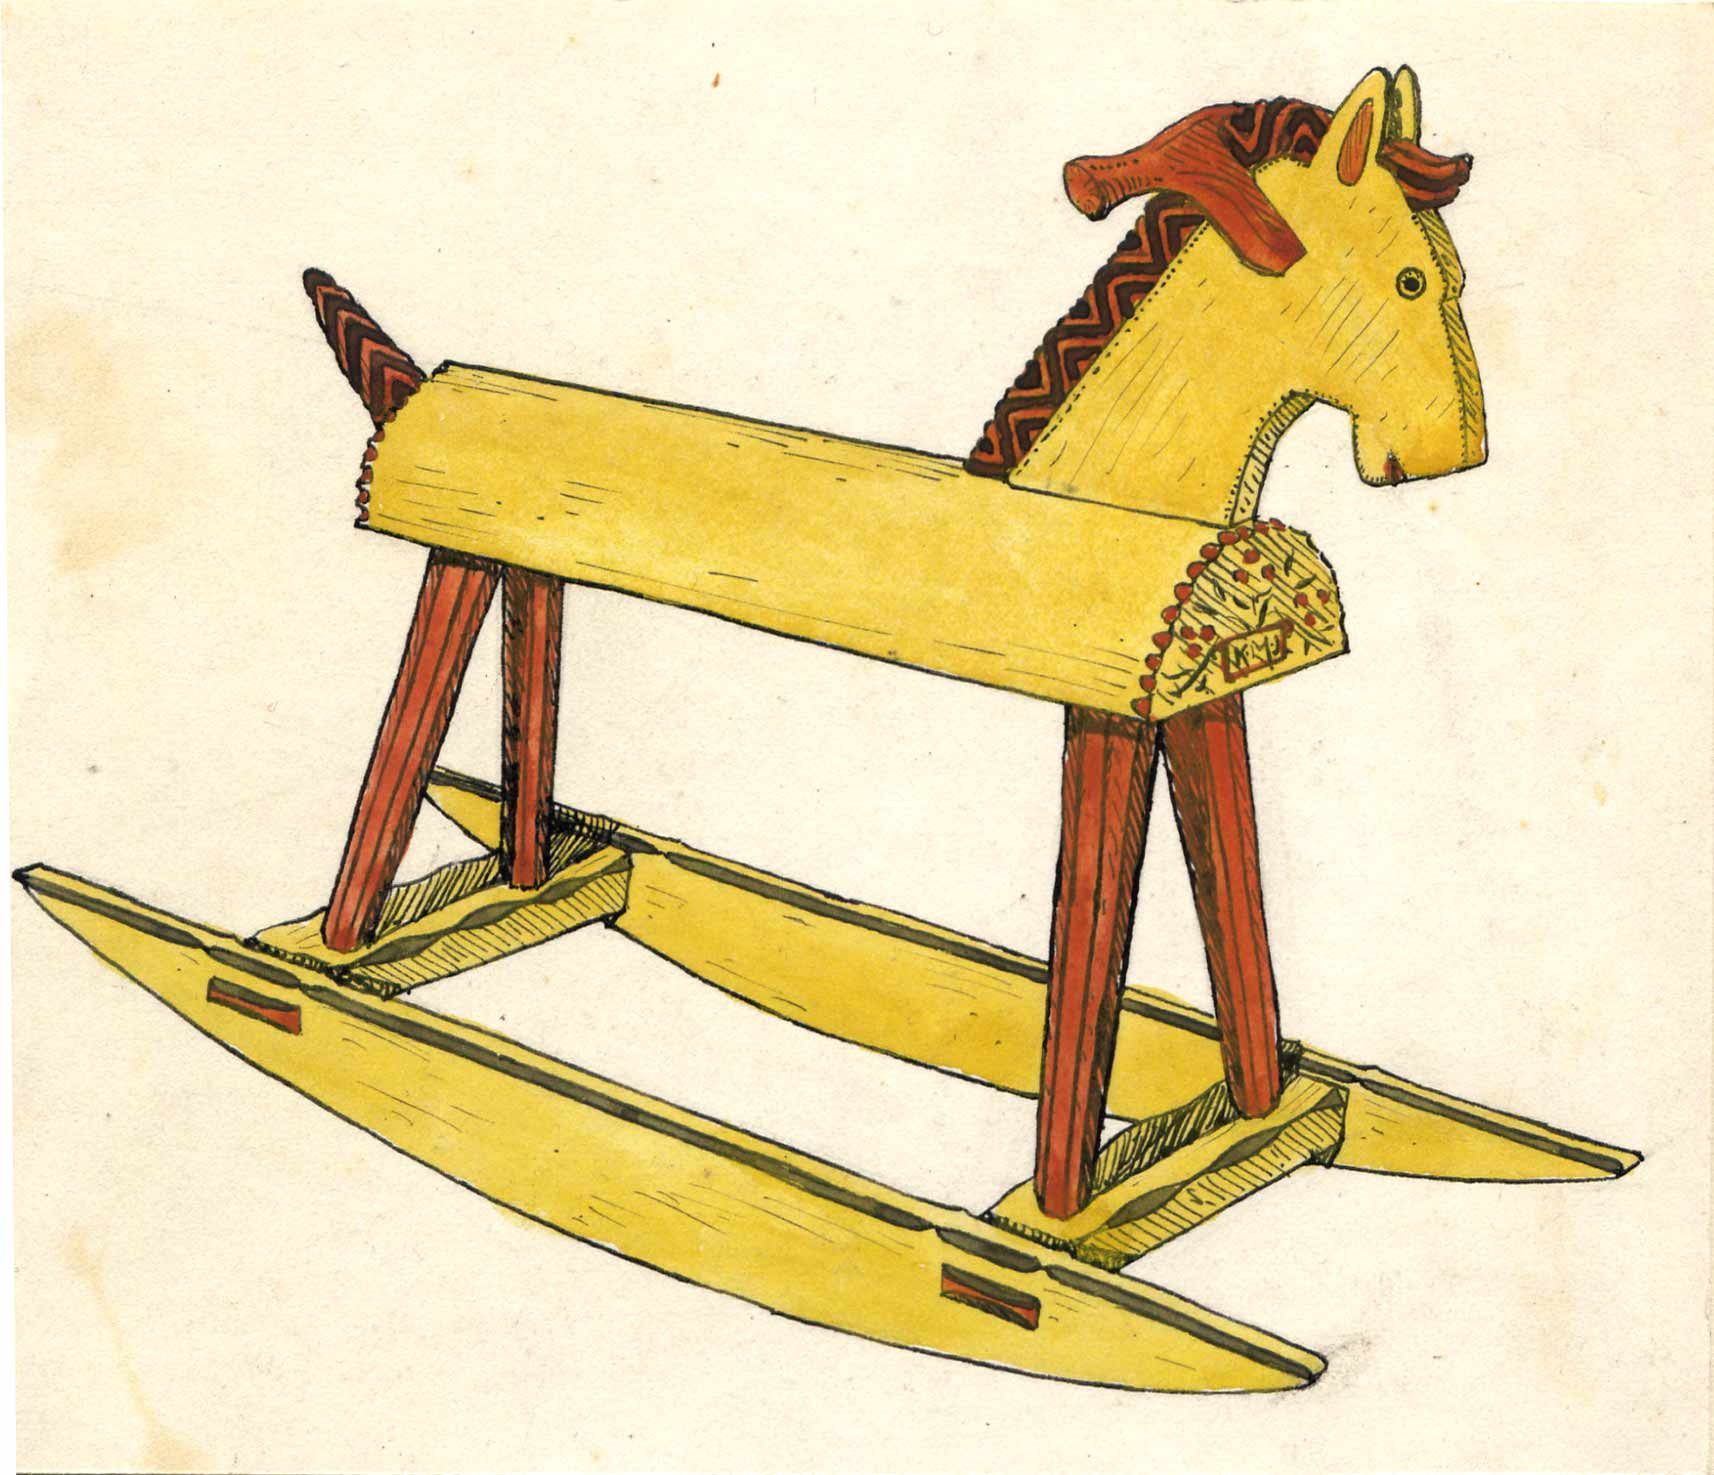 Child's rocking horse by Jewson, sketch at Owlpen